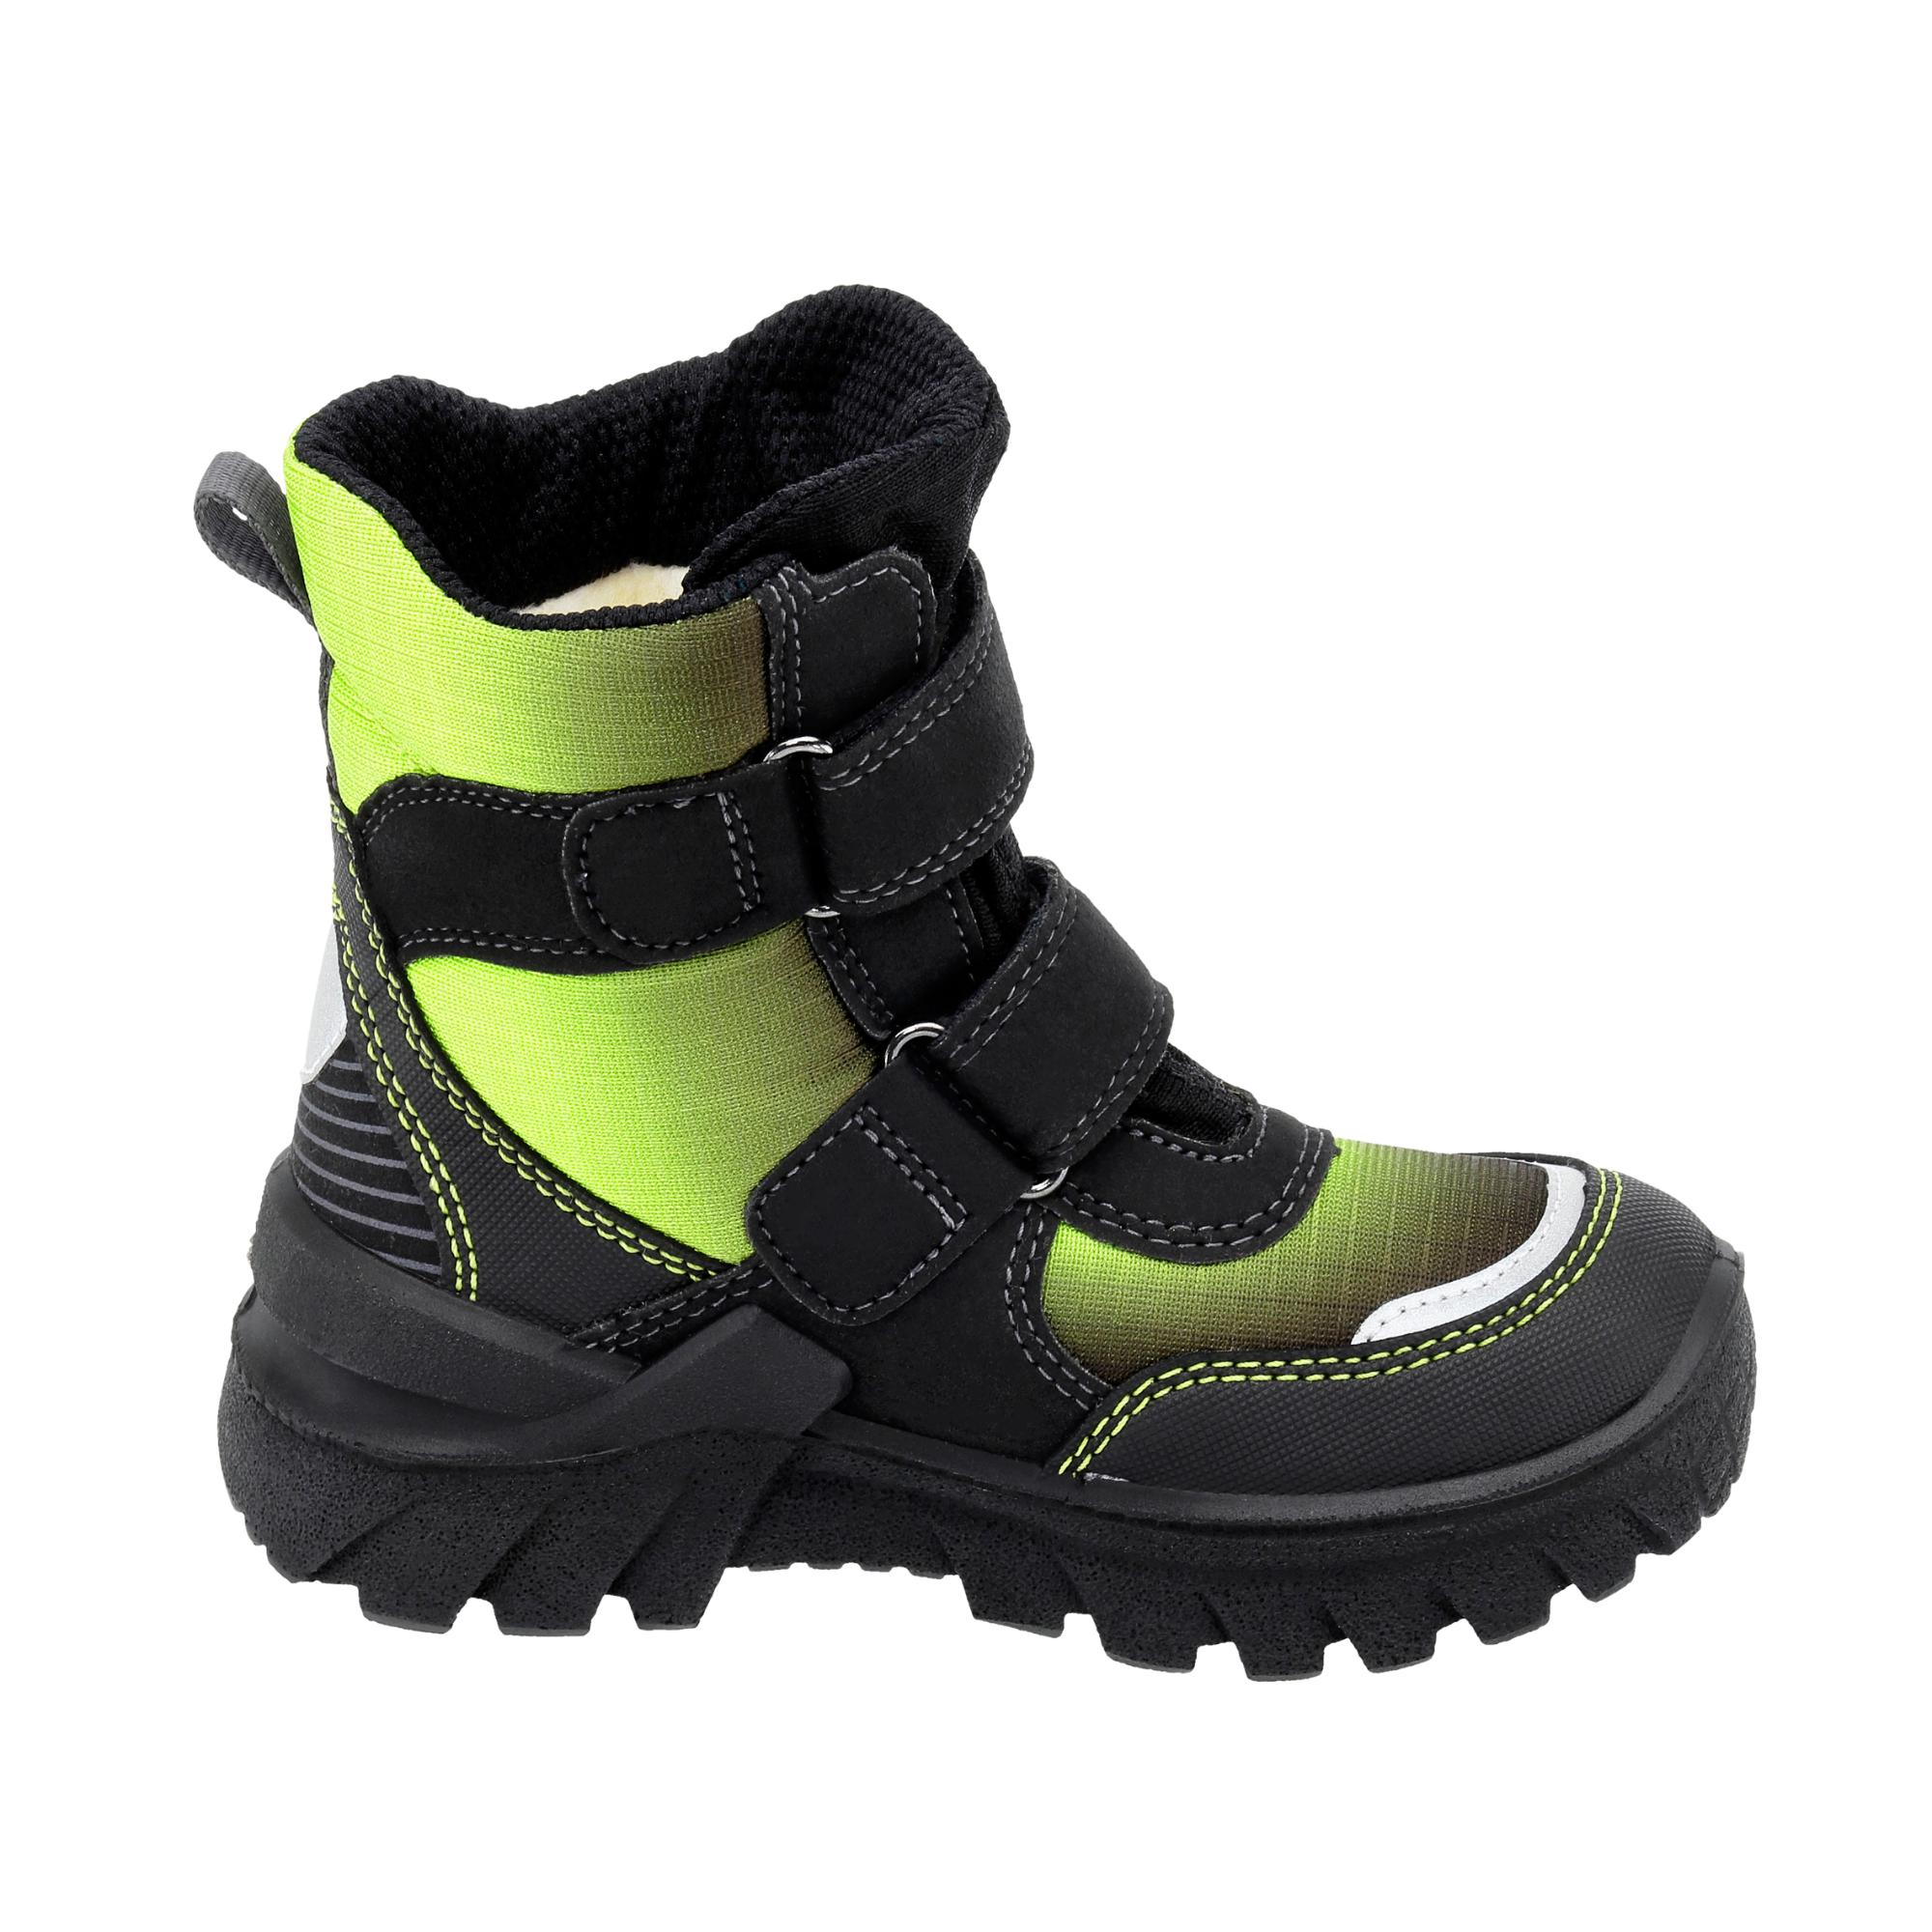 superfit gore tex pollux kinder jungen winterstiefel boots lederimitat schuhe ebay. Black Bedroom Furniture Sets. Home Design Ideas